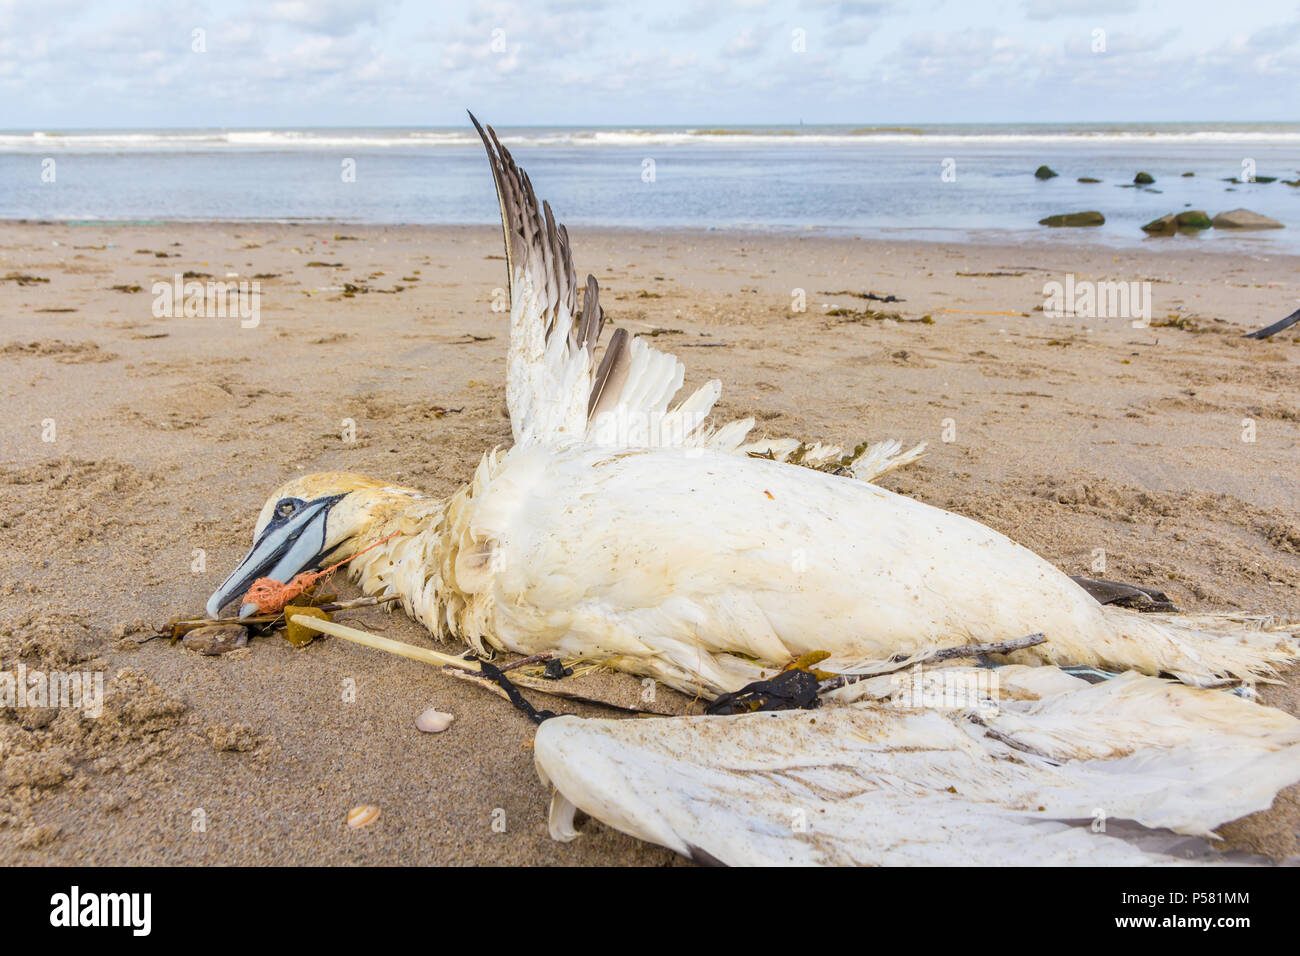 dead northern gannet trapped in plastic fishing net washed ashore on Kijkduin beach The Hague, the Netherlands - Stock Image